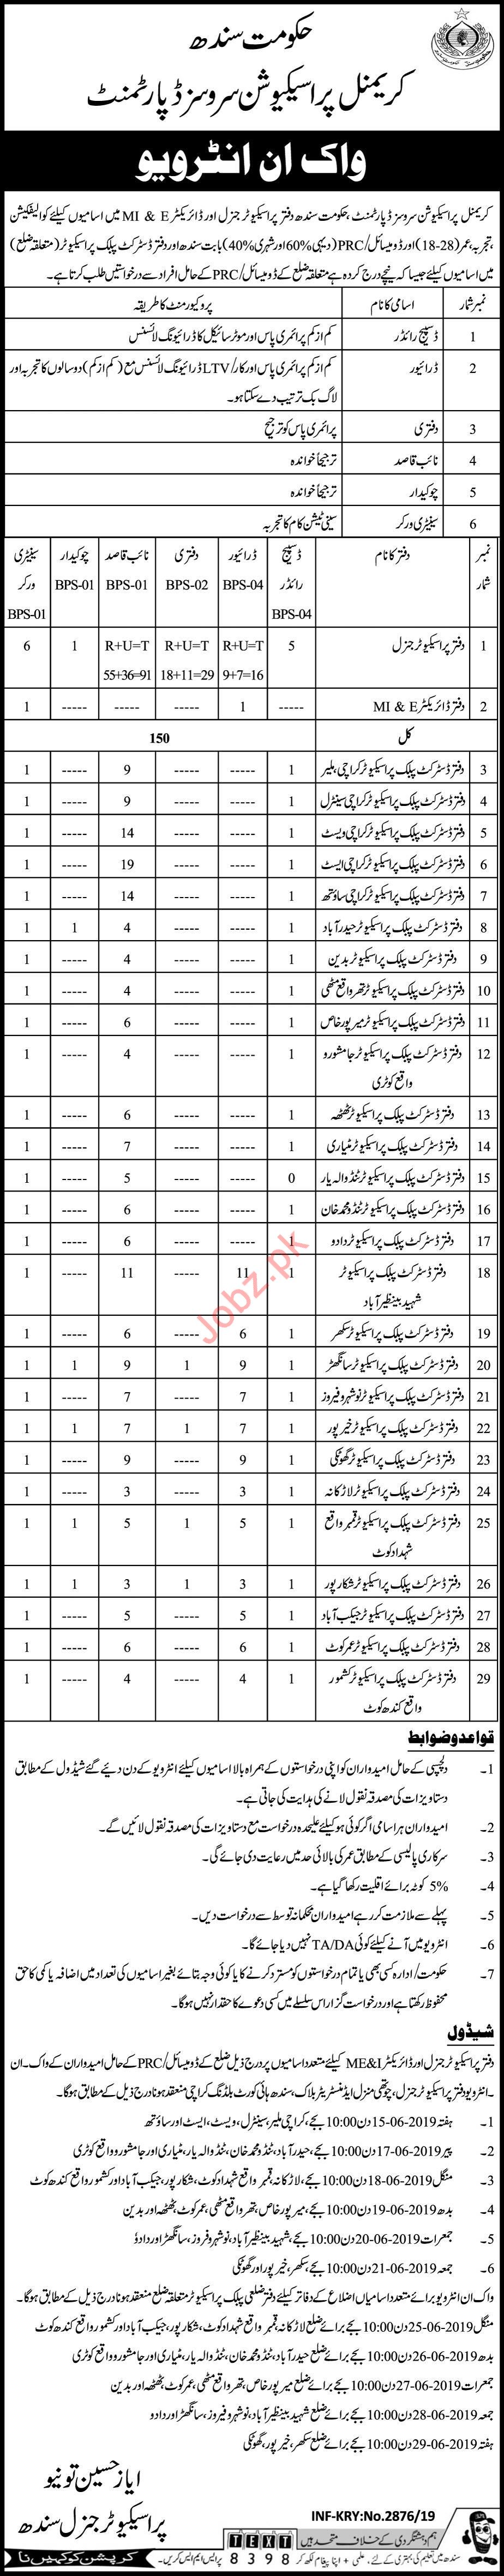 Criminal Prosecution Services Department Jobs Interviews2019